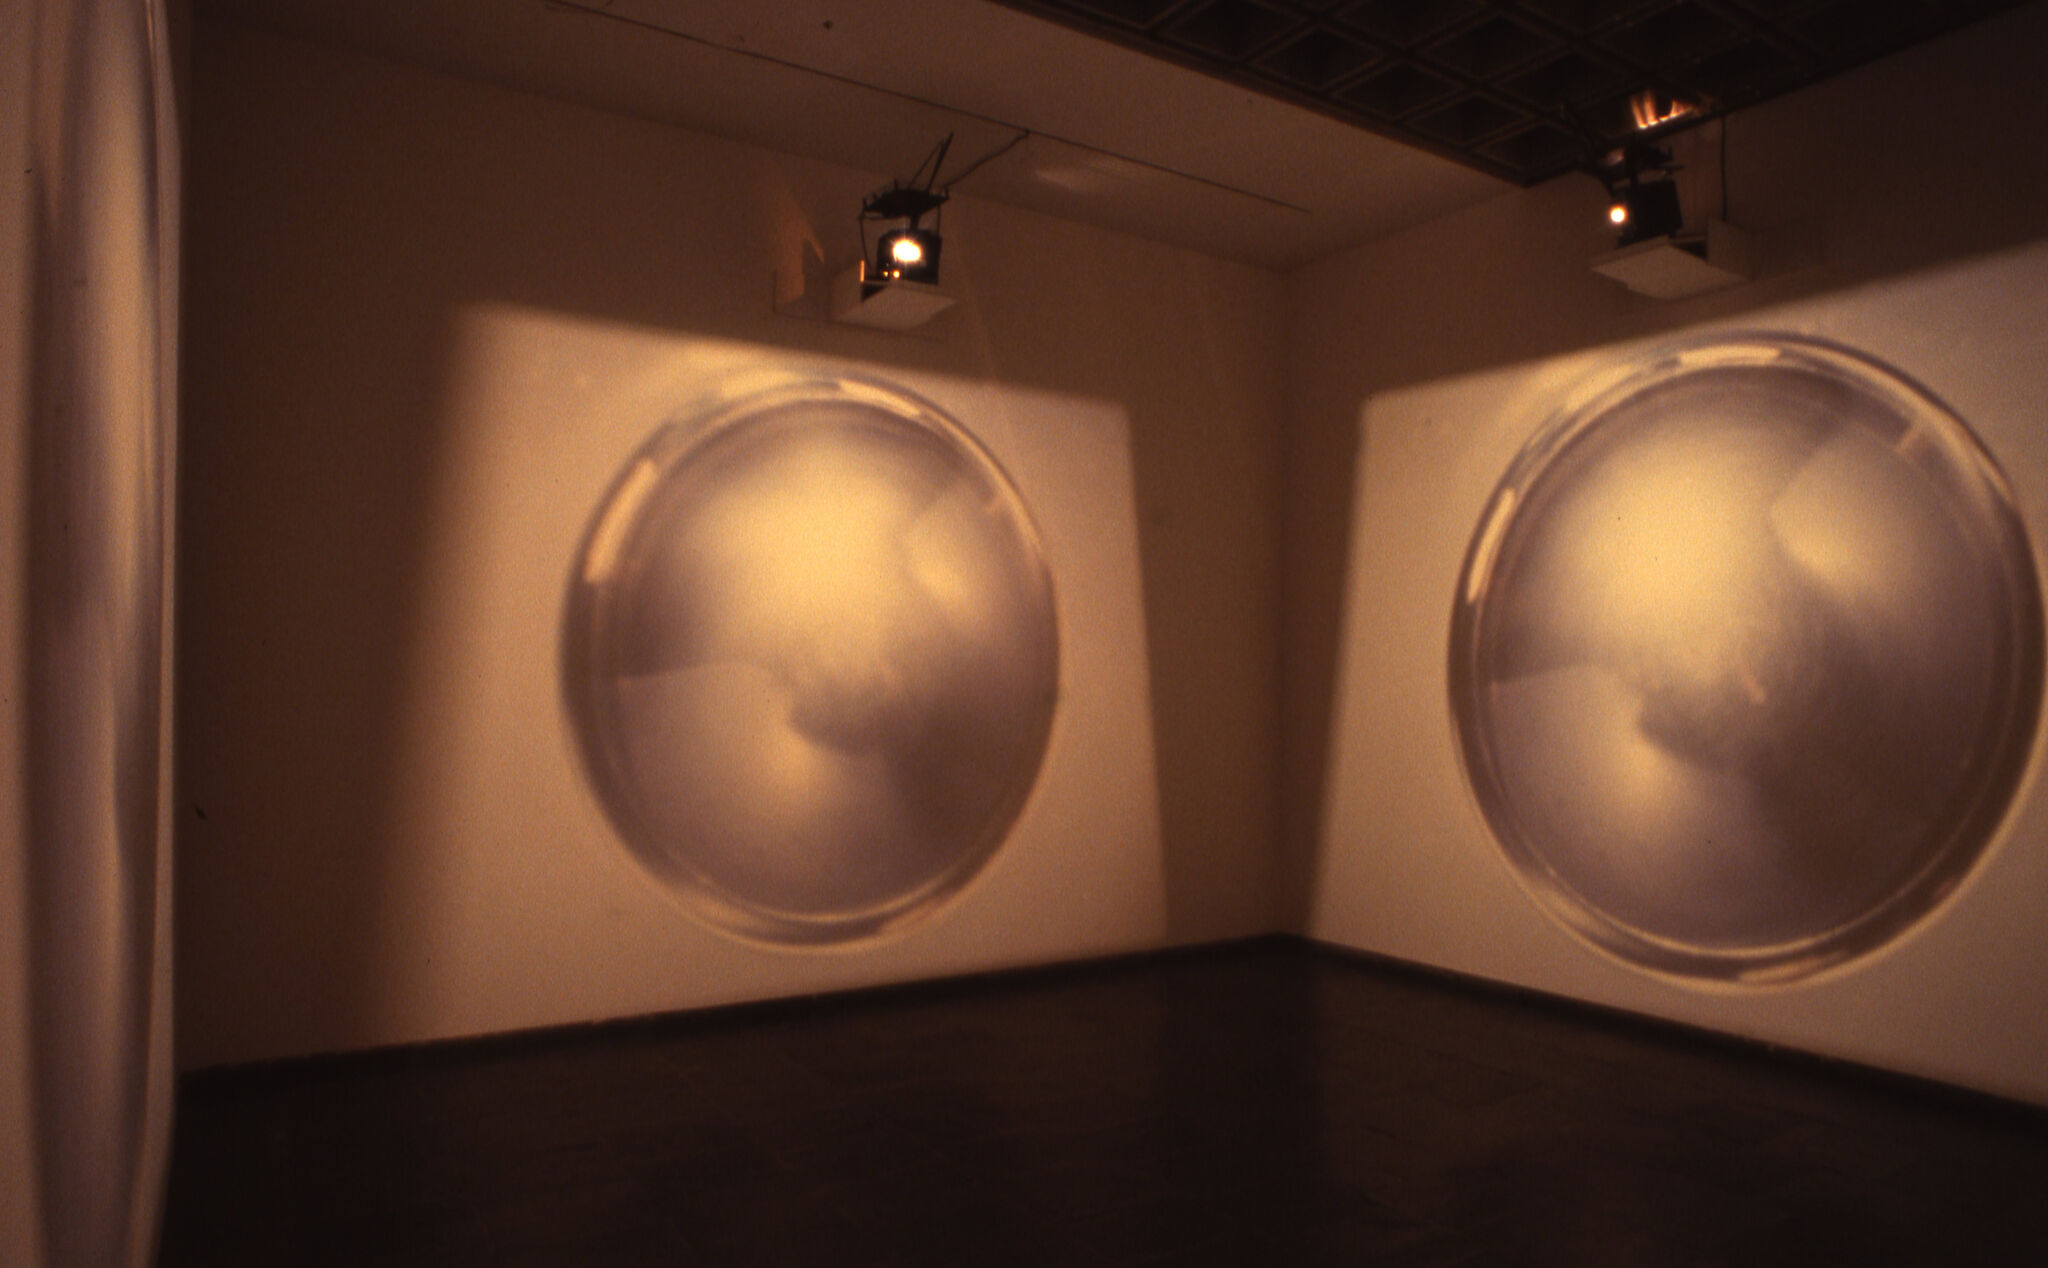 A dimly lit gallery space with large projections of a circle on the walls.